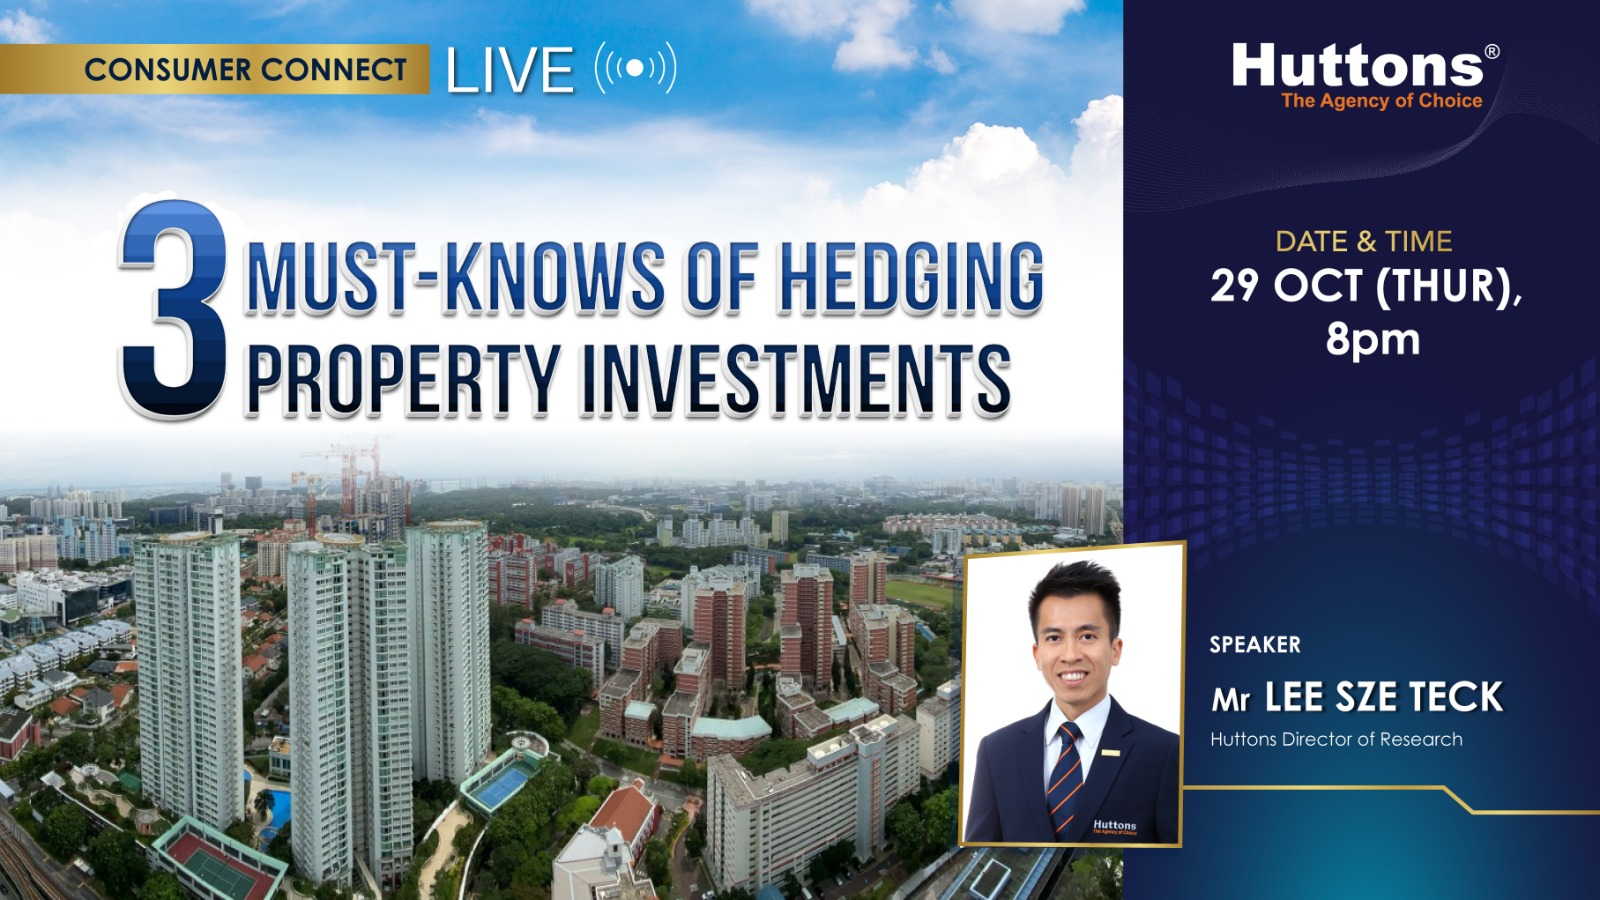 Huttons Consumer Connect - 3 Must Knows of Hedging Property Investments